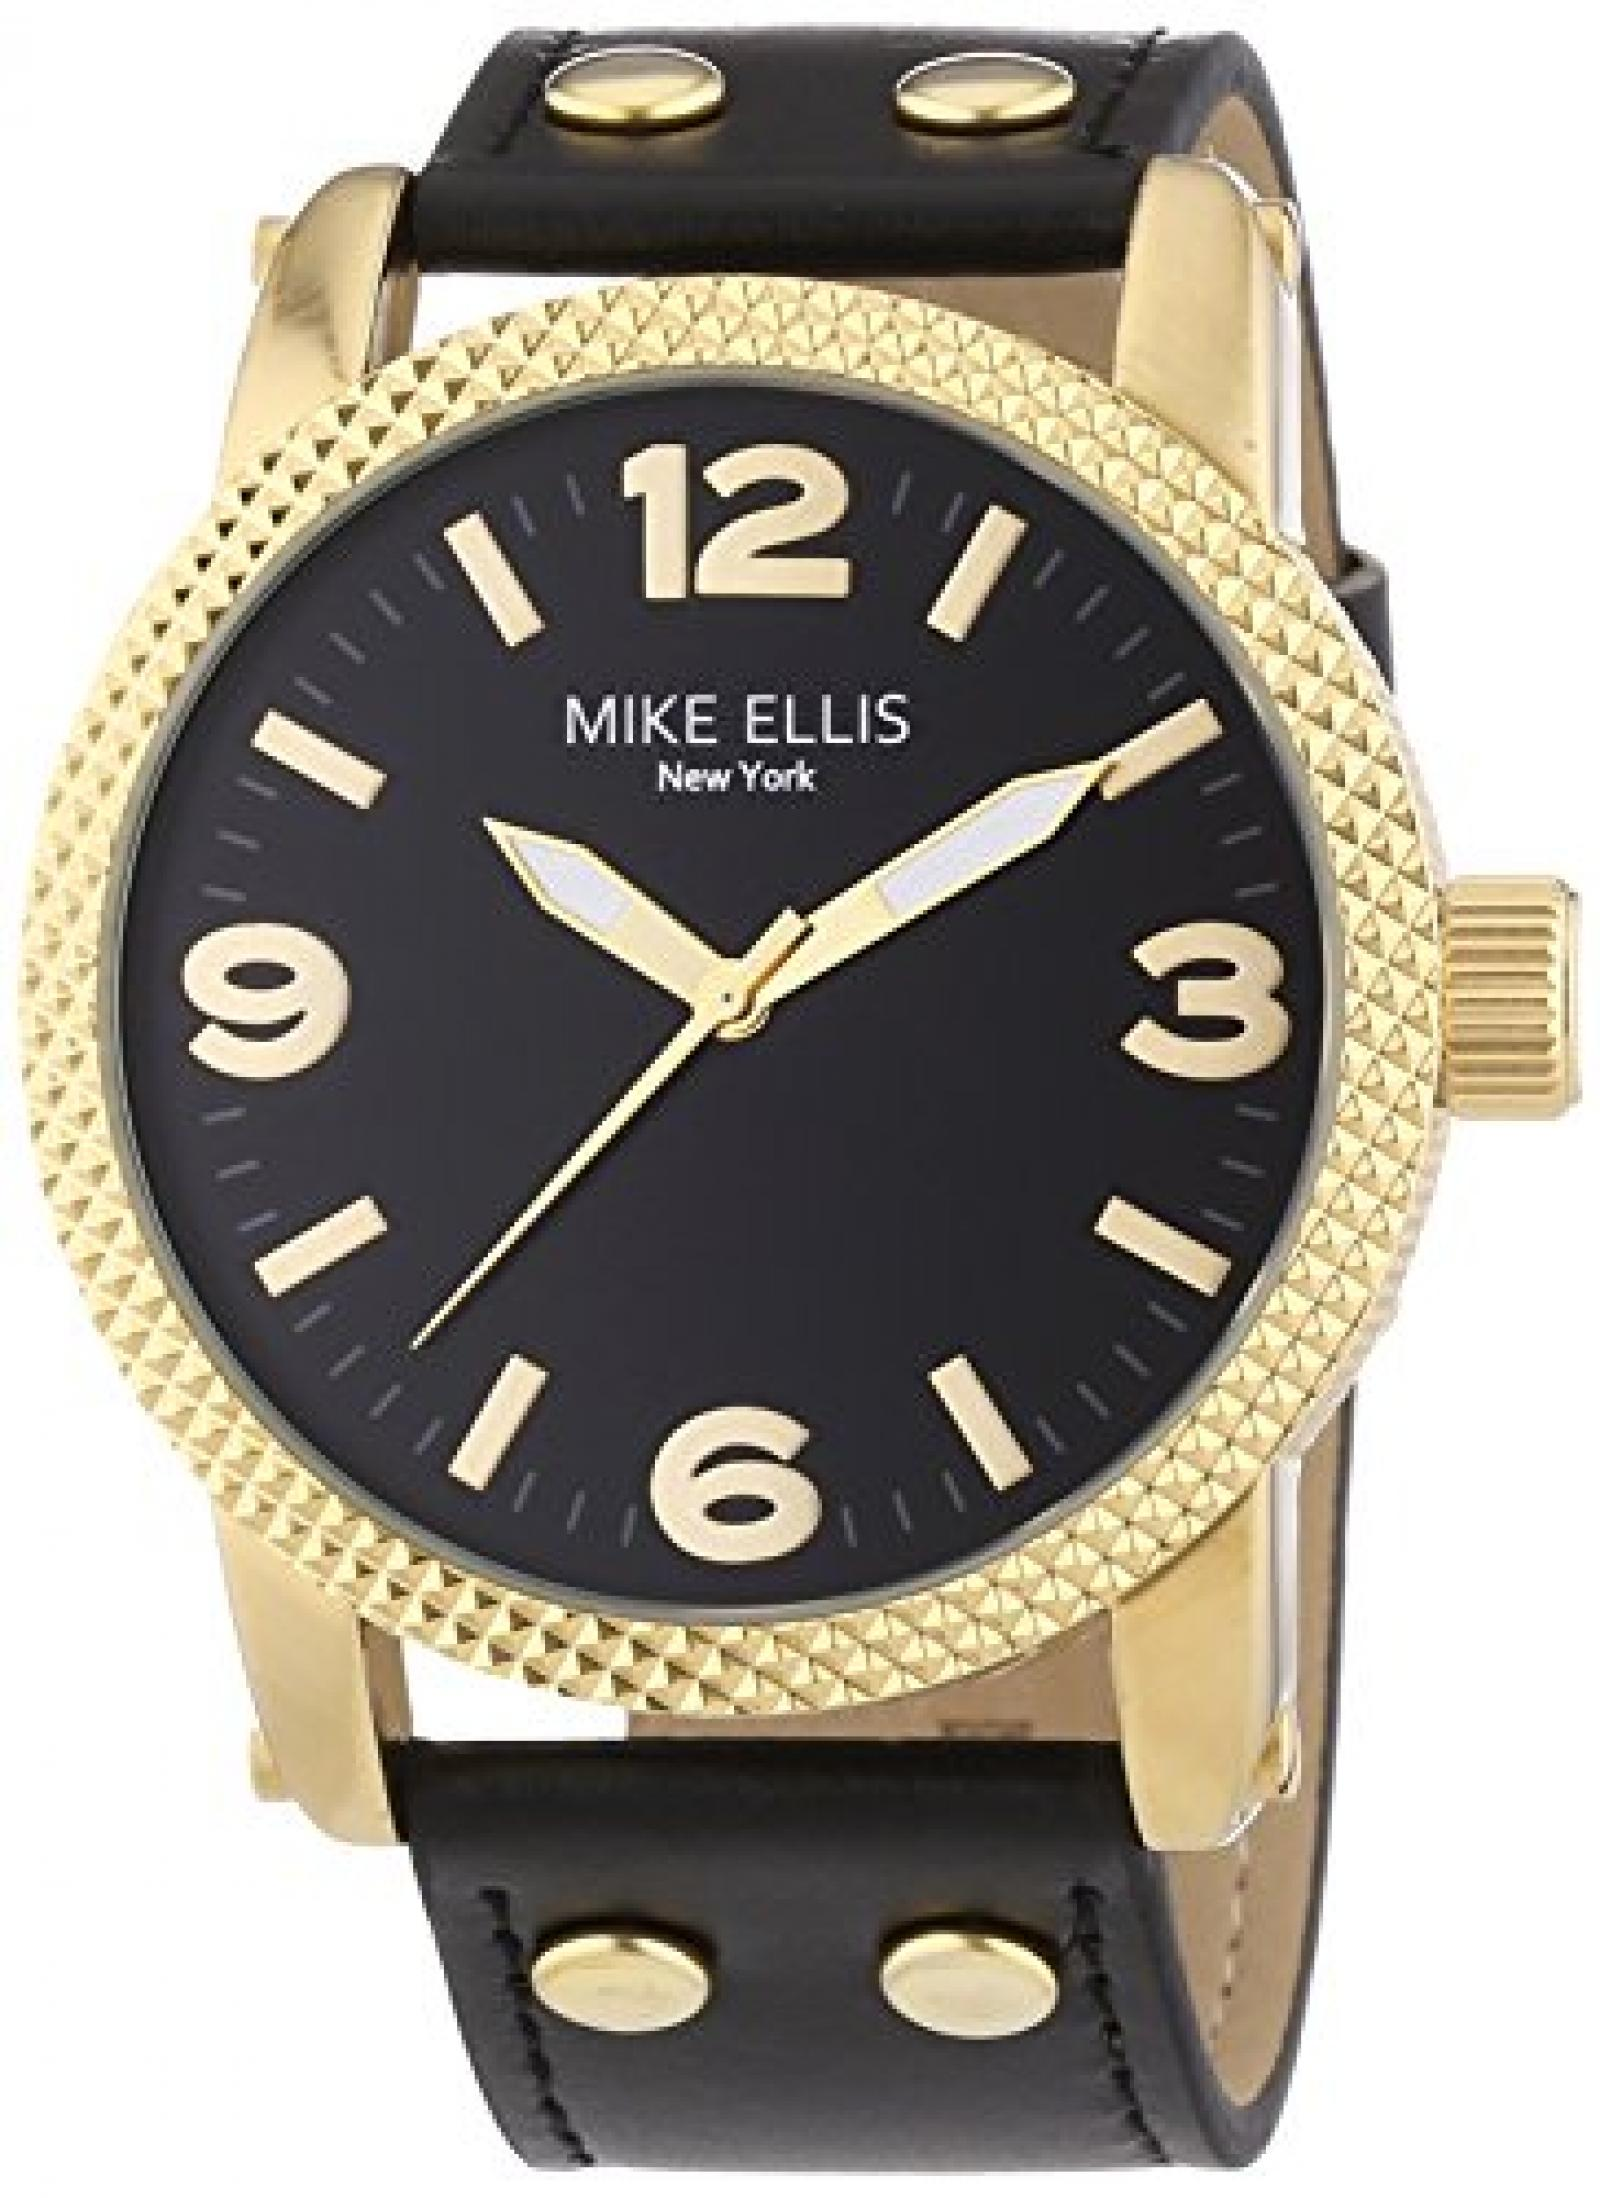 Mike Ellis New York Herren-Armbanduhr XL an:e Analog Quarz Leder SL4316/1